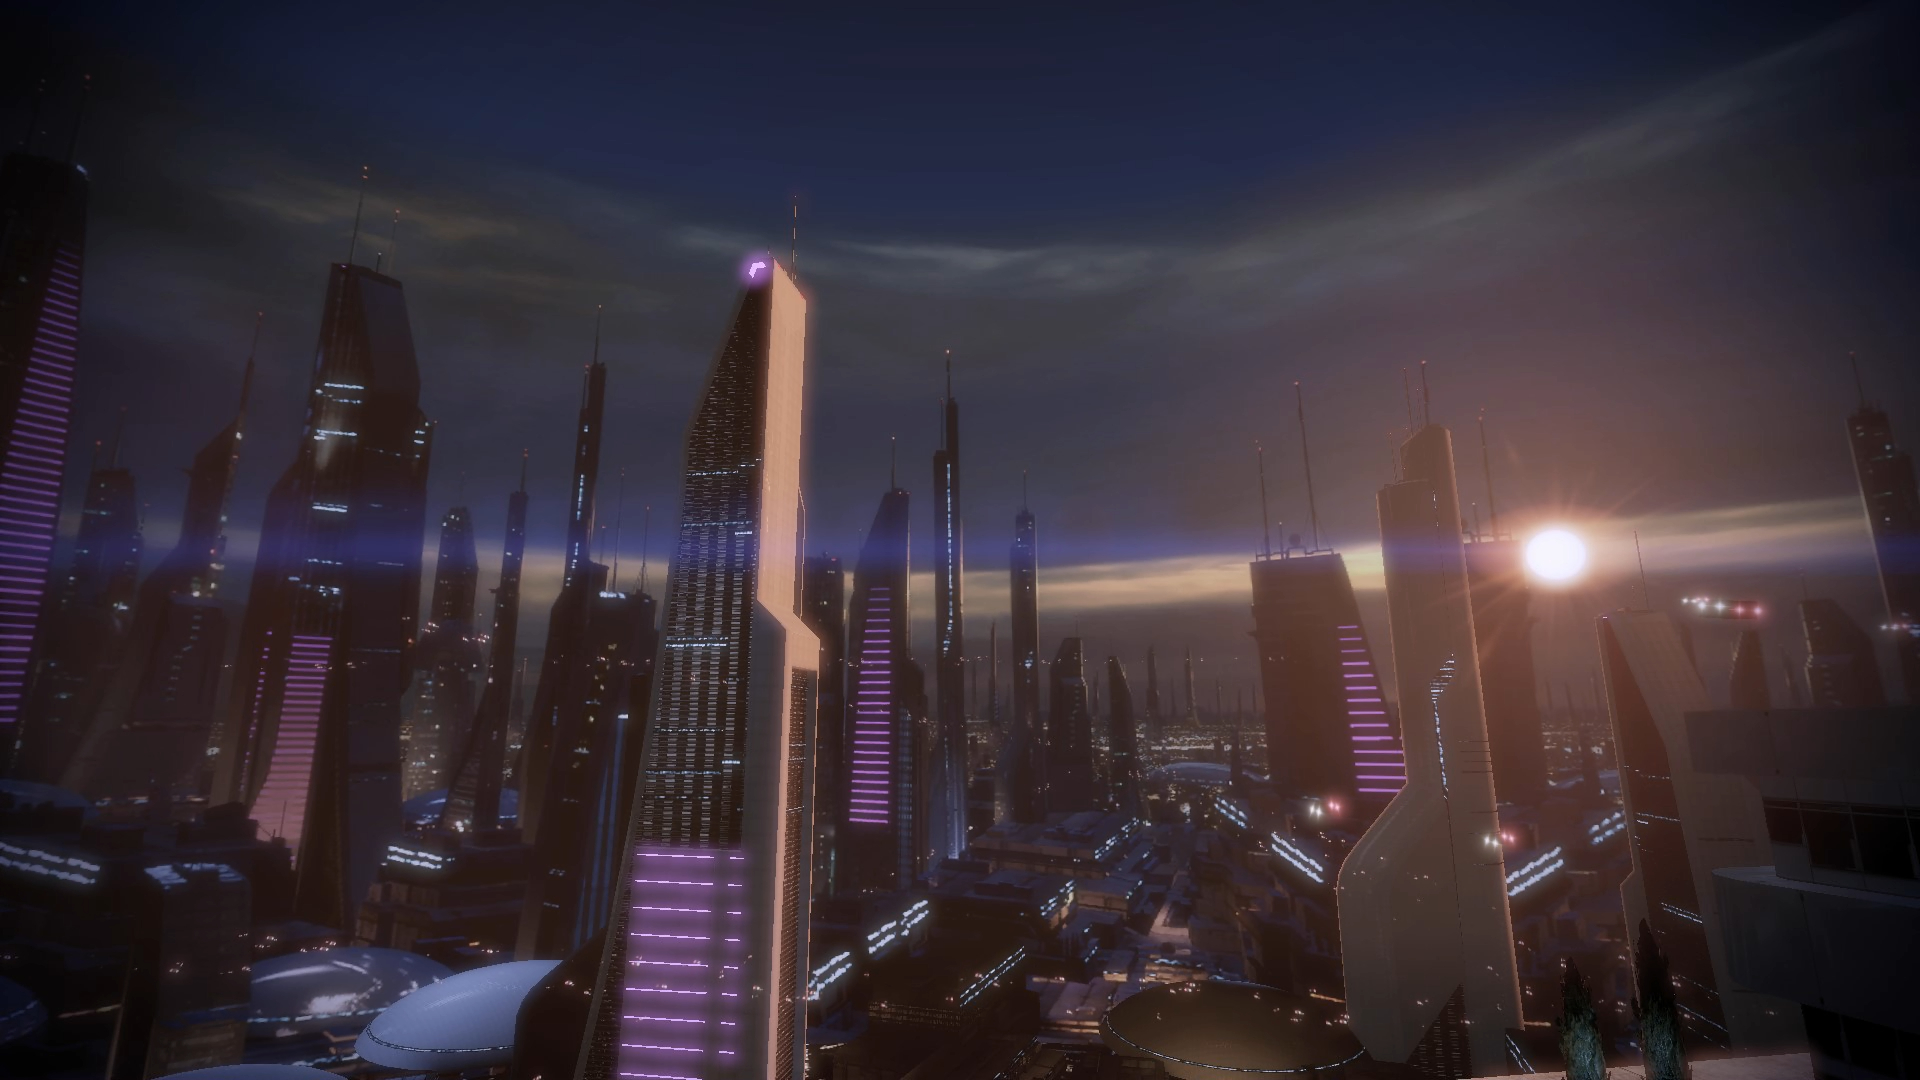 Mass Effect 2 Illium Dreamscene by droot1986 on DeviantArt